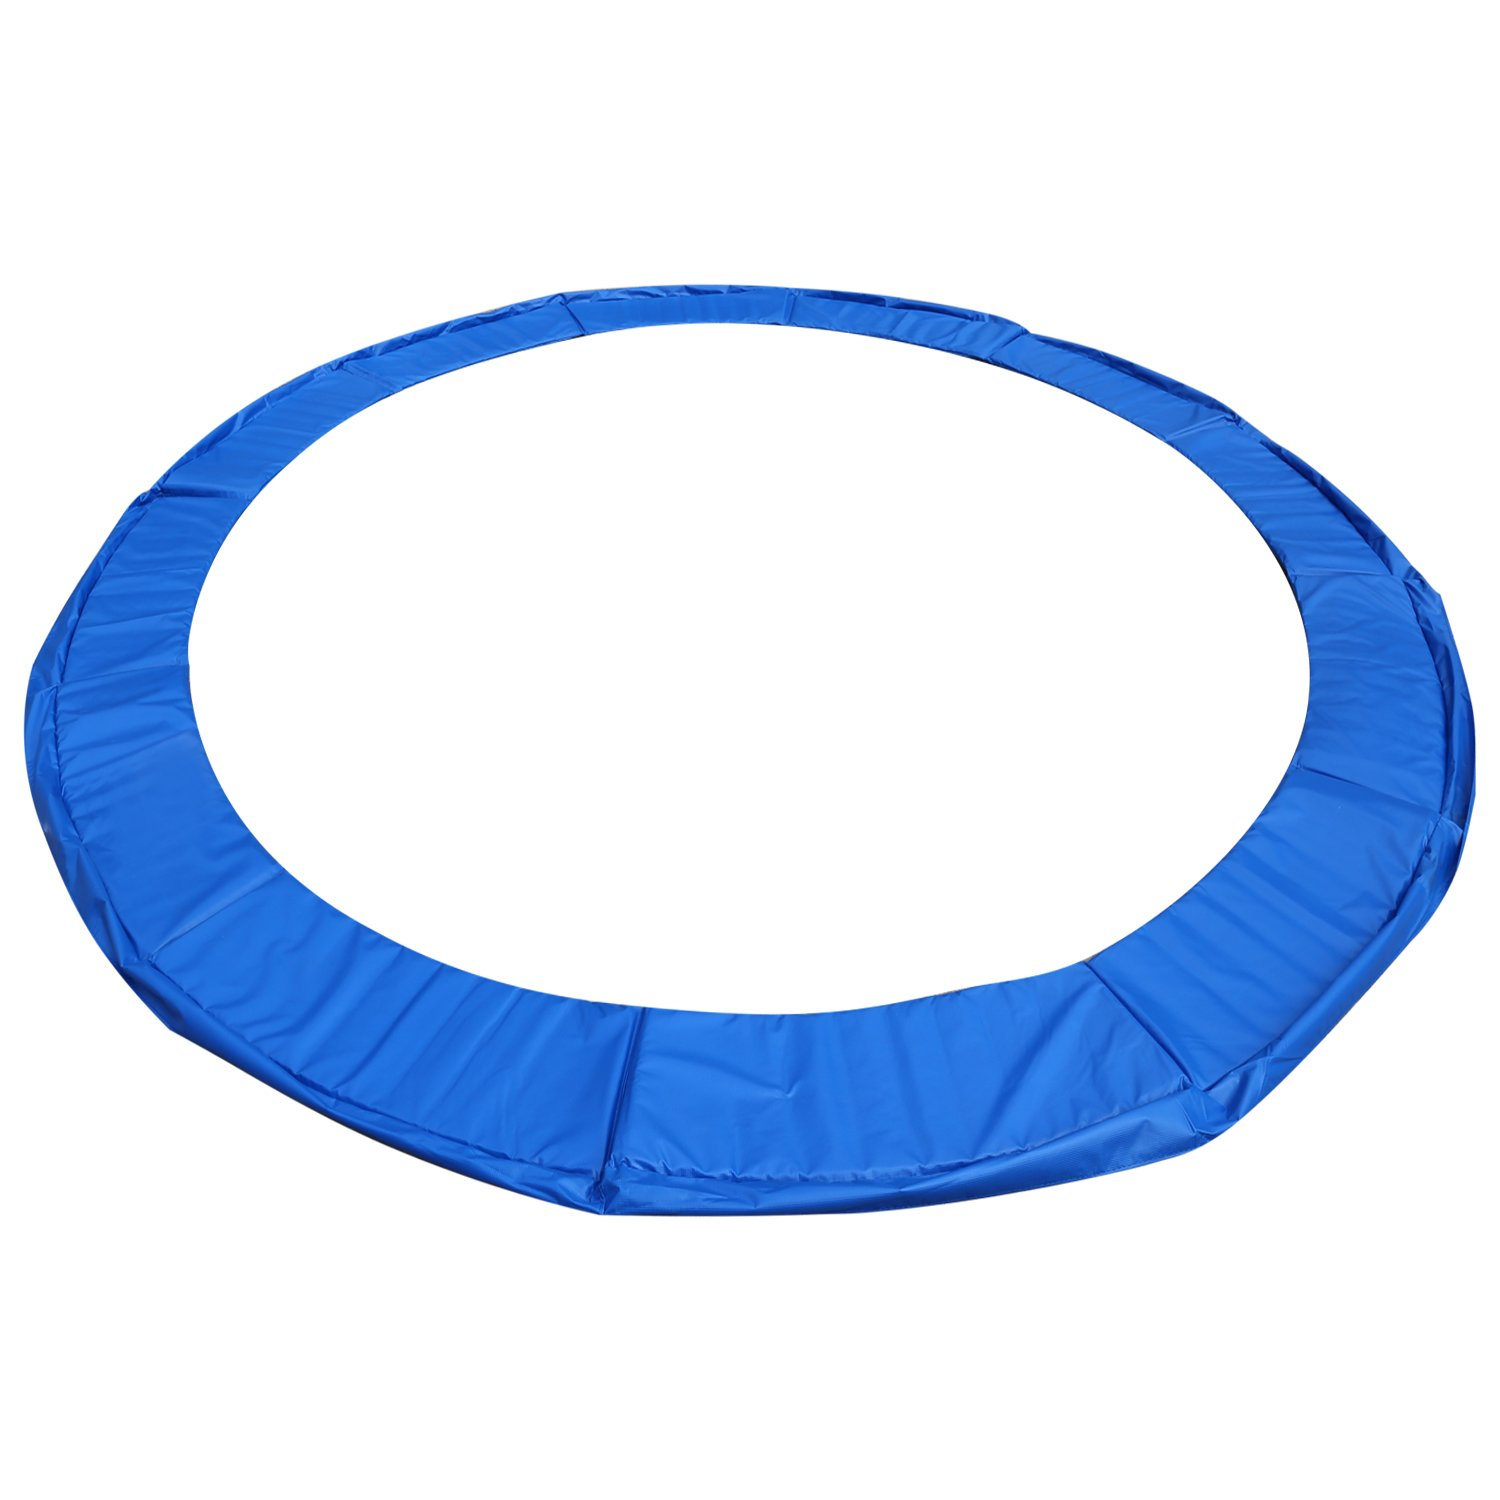 15 14 12 10 Ft Replacement Trampoline Surround PVC Pad Foam Safety Spring Cover Padding Pads (Blue, 15 Ft) by Zafuar Sports